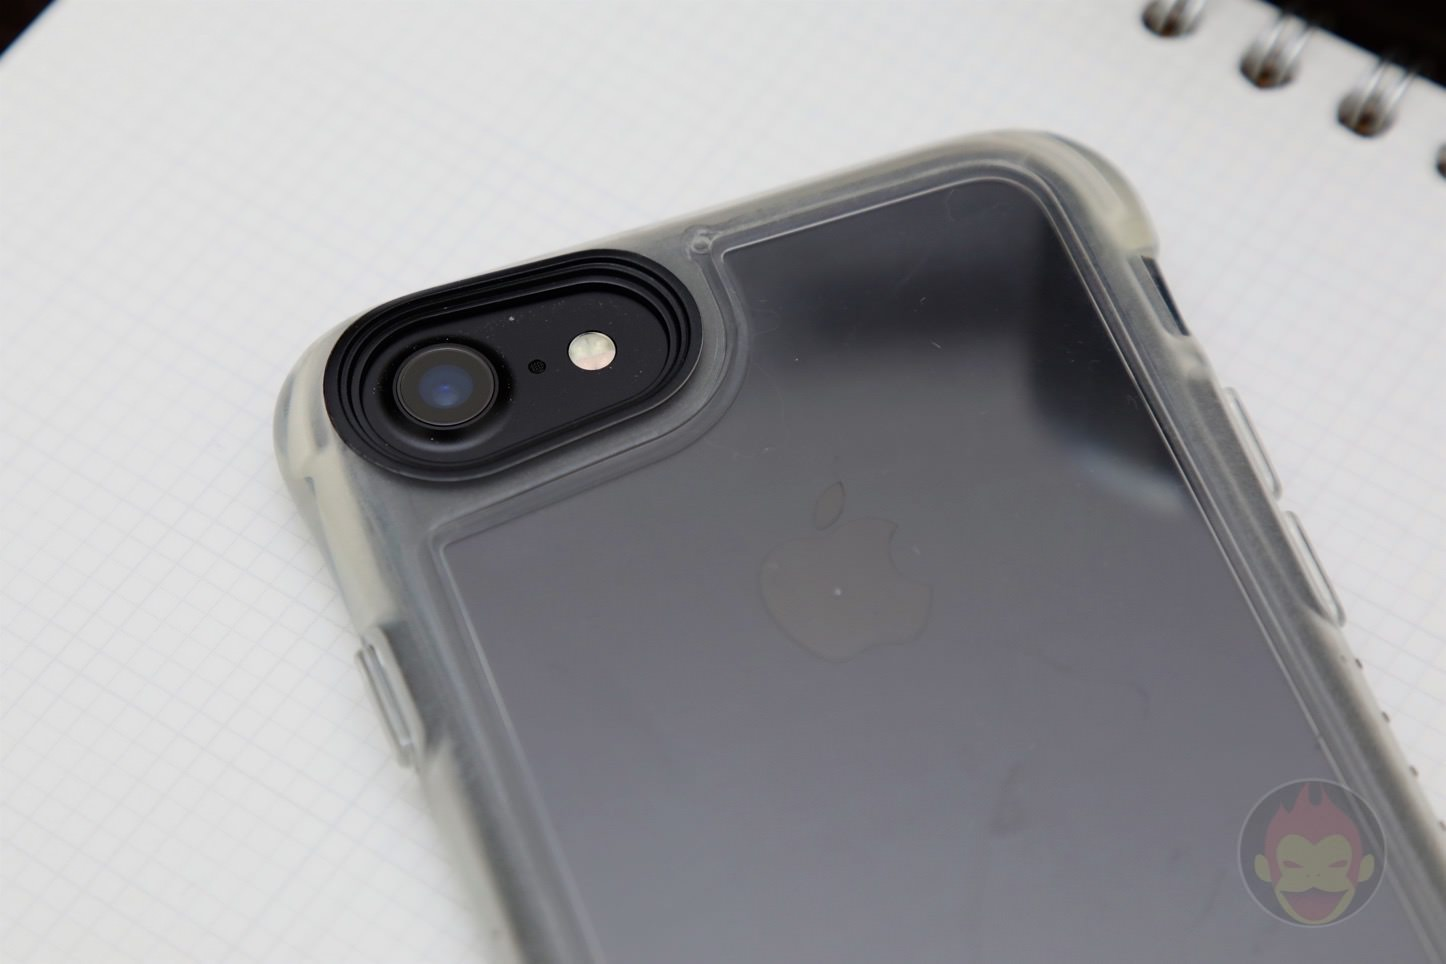 TUNEWEAR Hybrid Shell for iPhone7